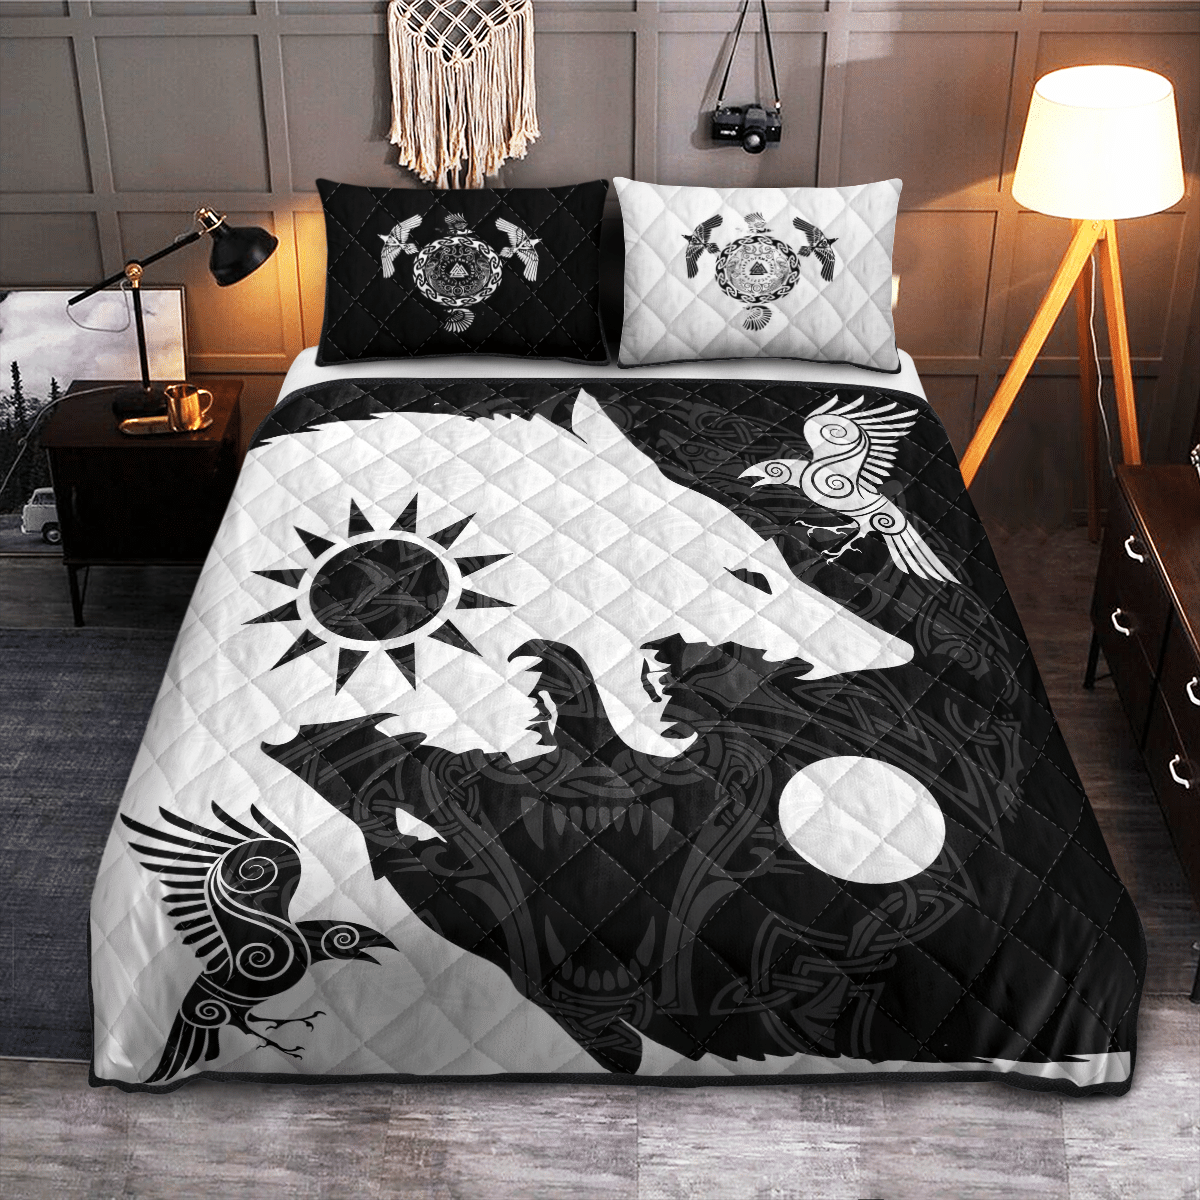 Yin Yang Wolf and Raven Viking quilt bedding set - LIMITED EDITION